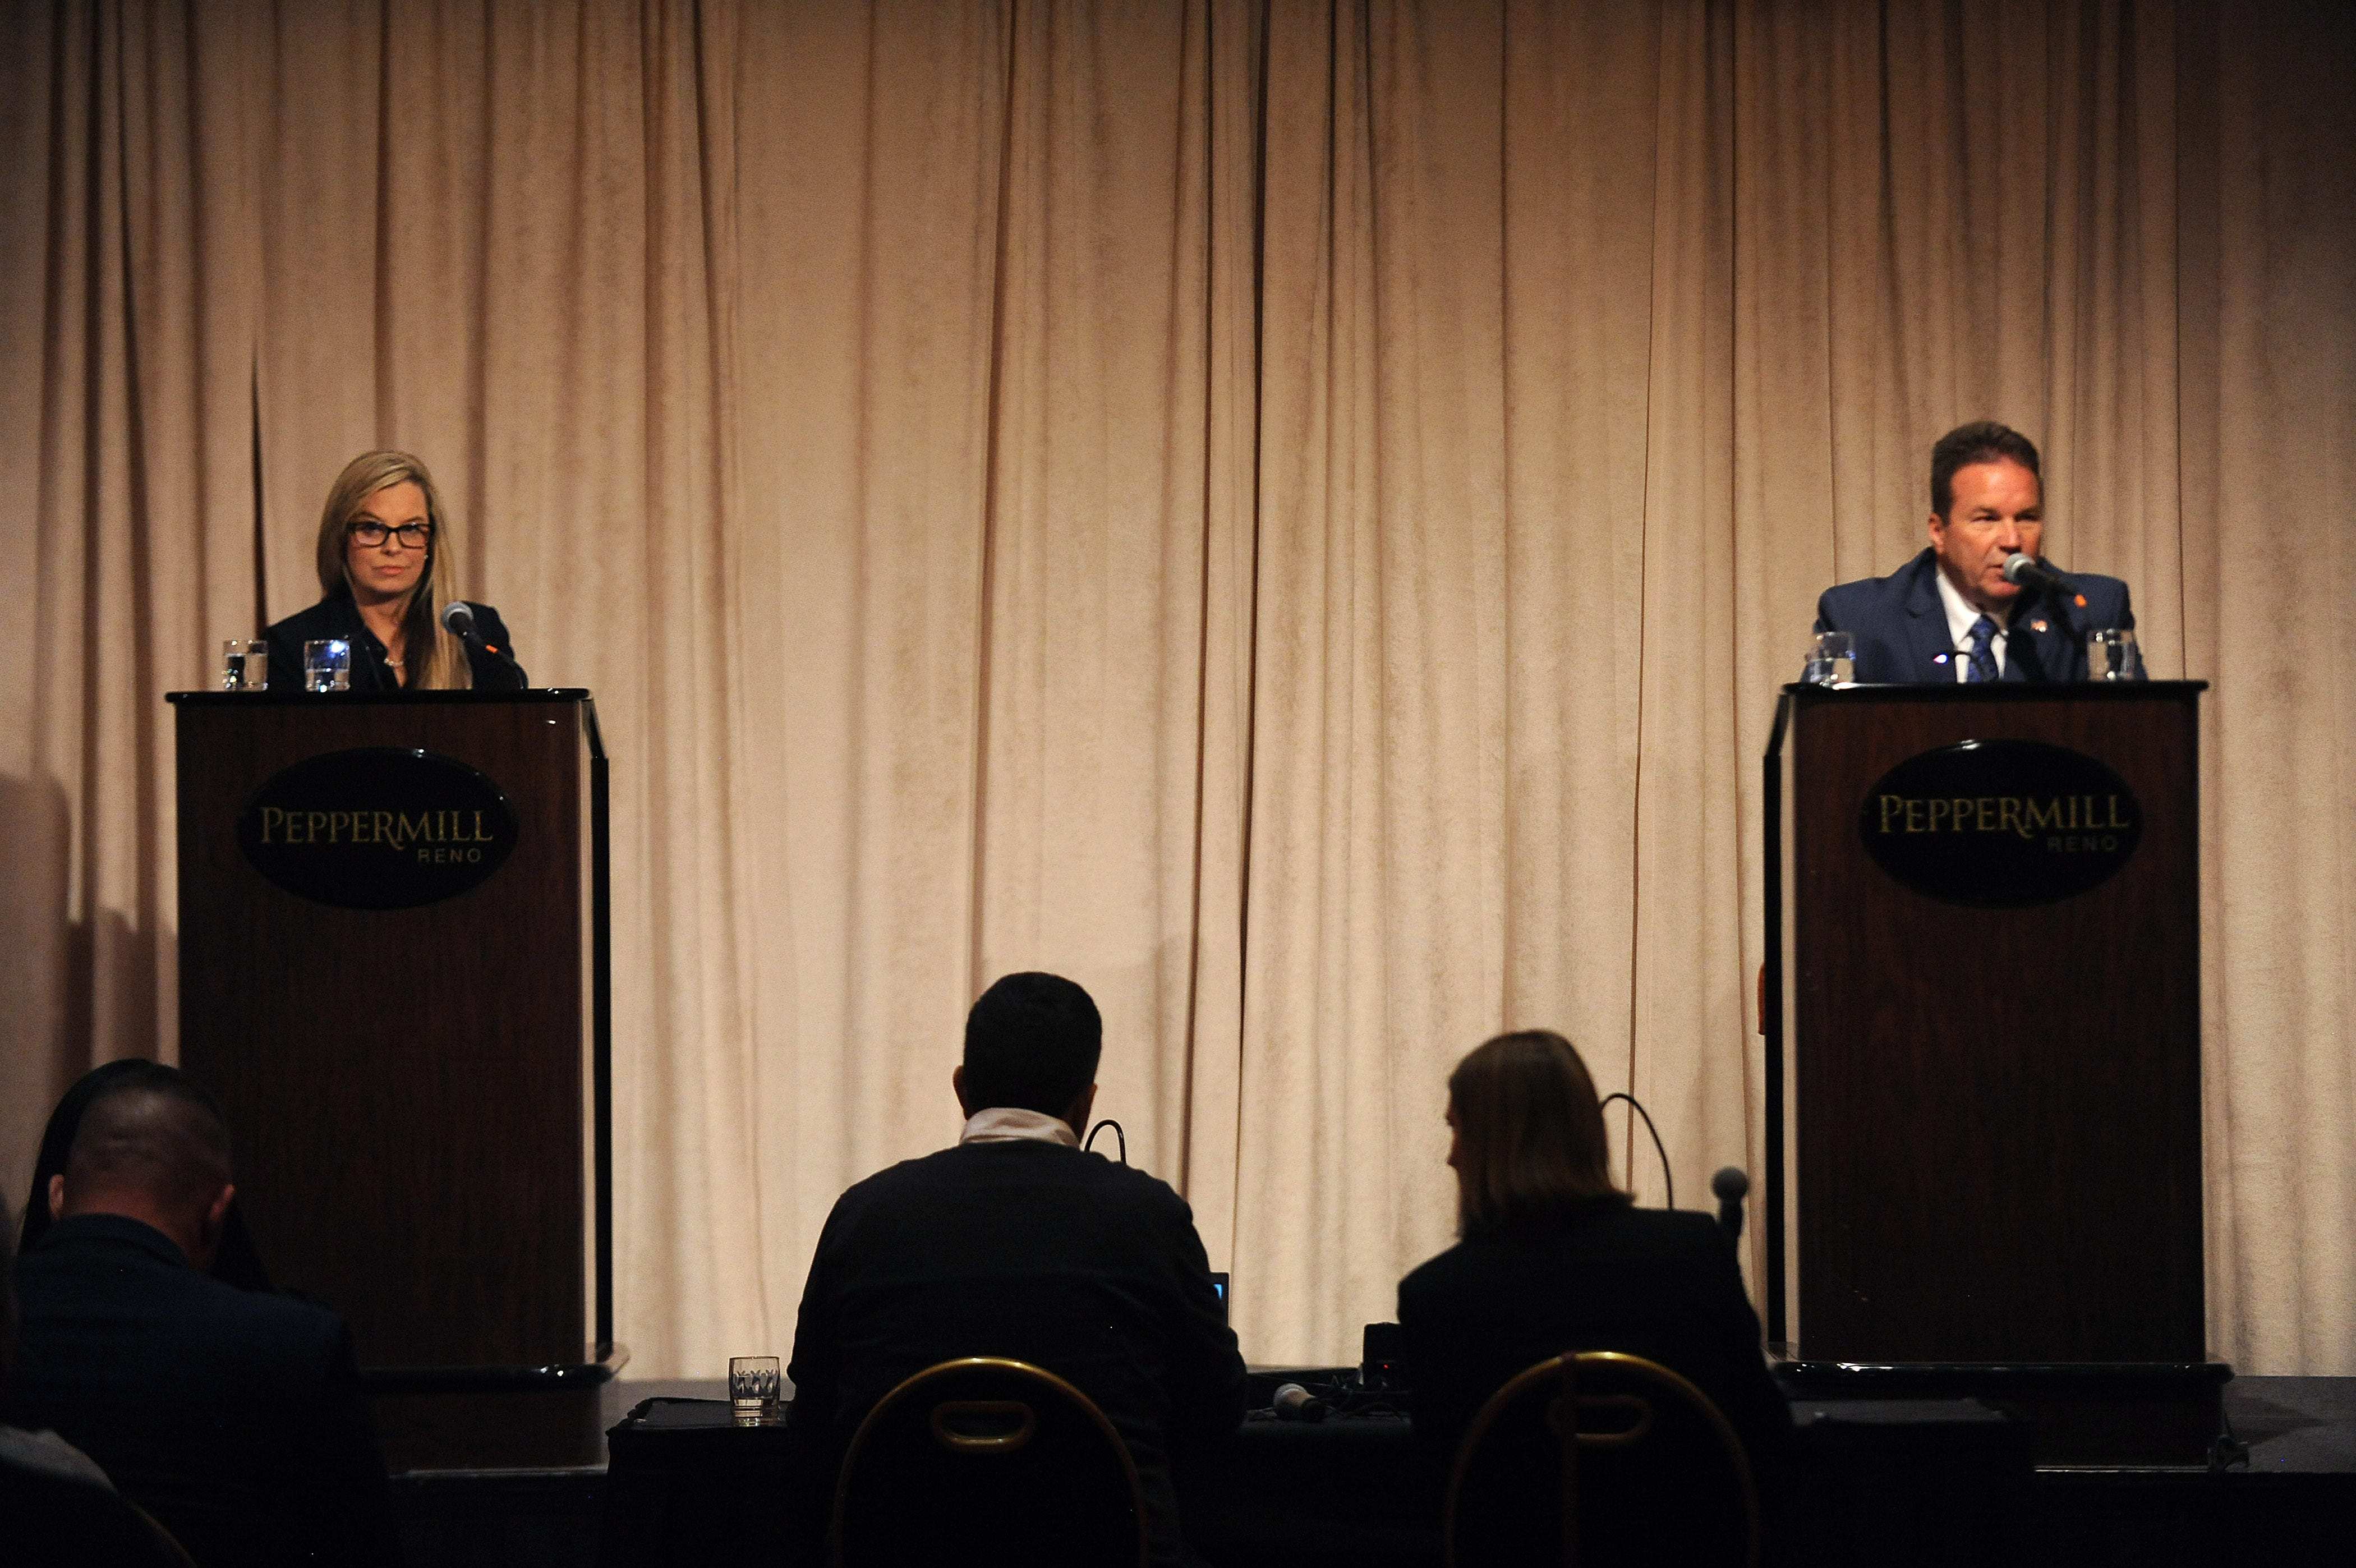 Missed the Reno mayor debate? Here are the top moments from the Schieve, Lorton faceoff | Reno Gazette Journal